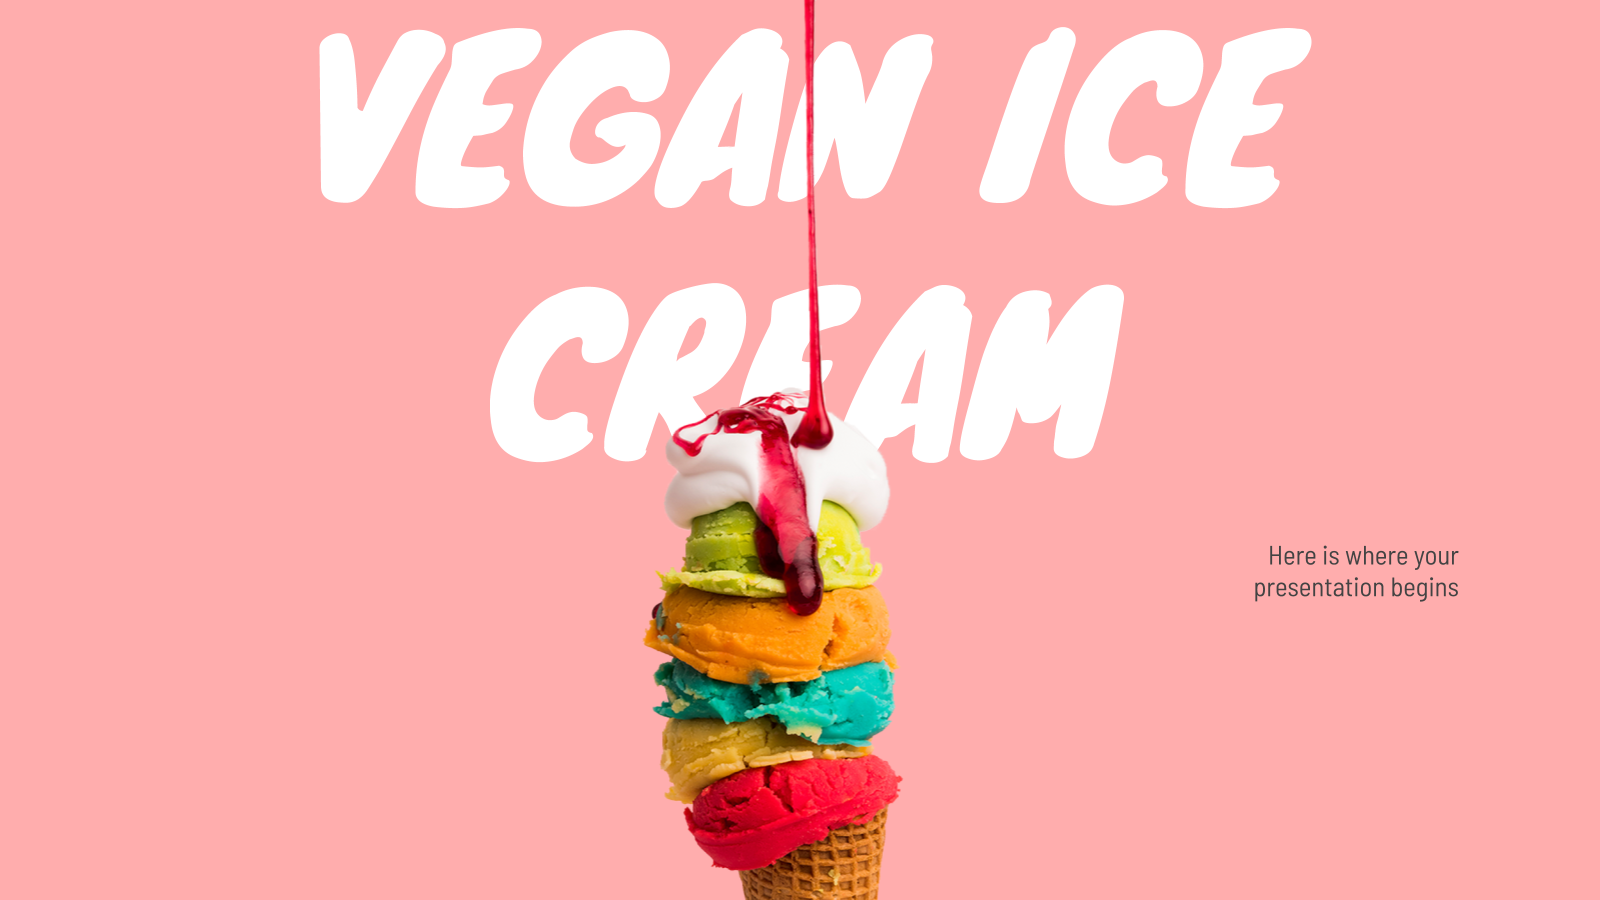 Vegan Ice Cream Company presentation template